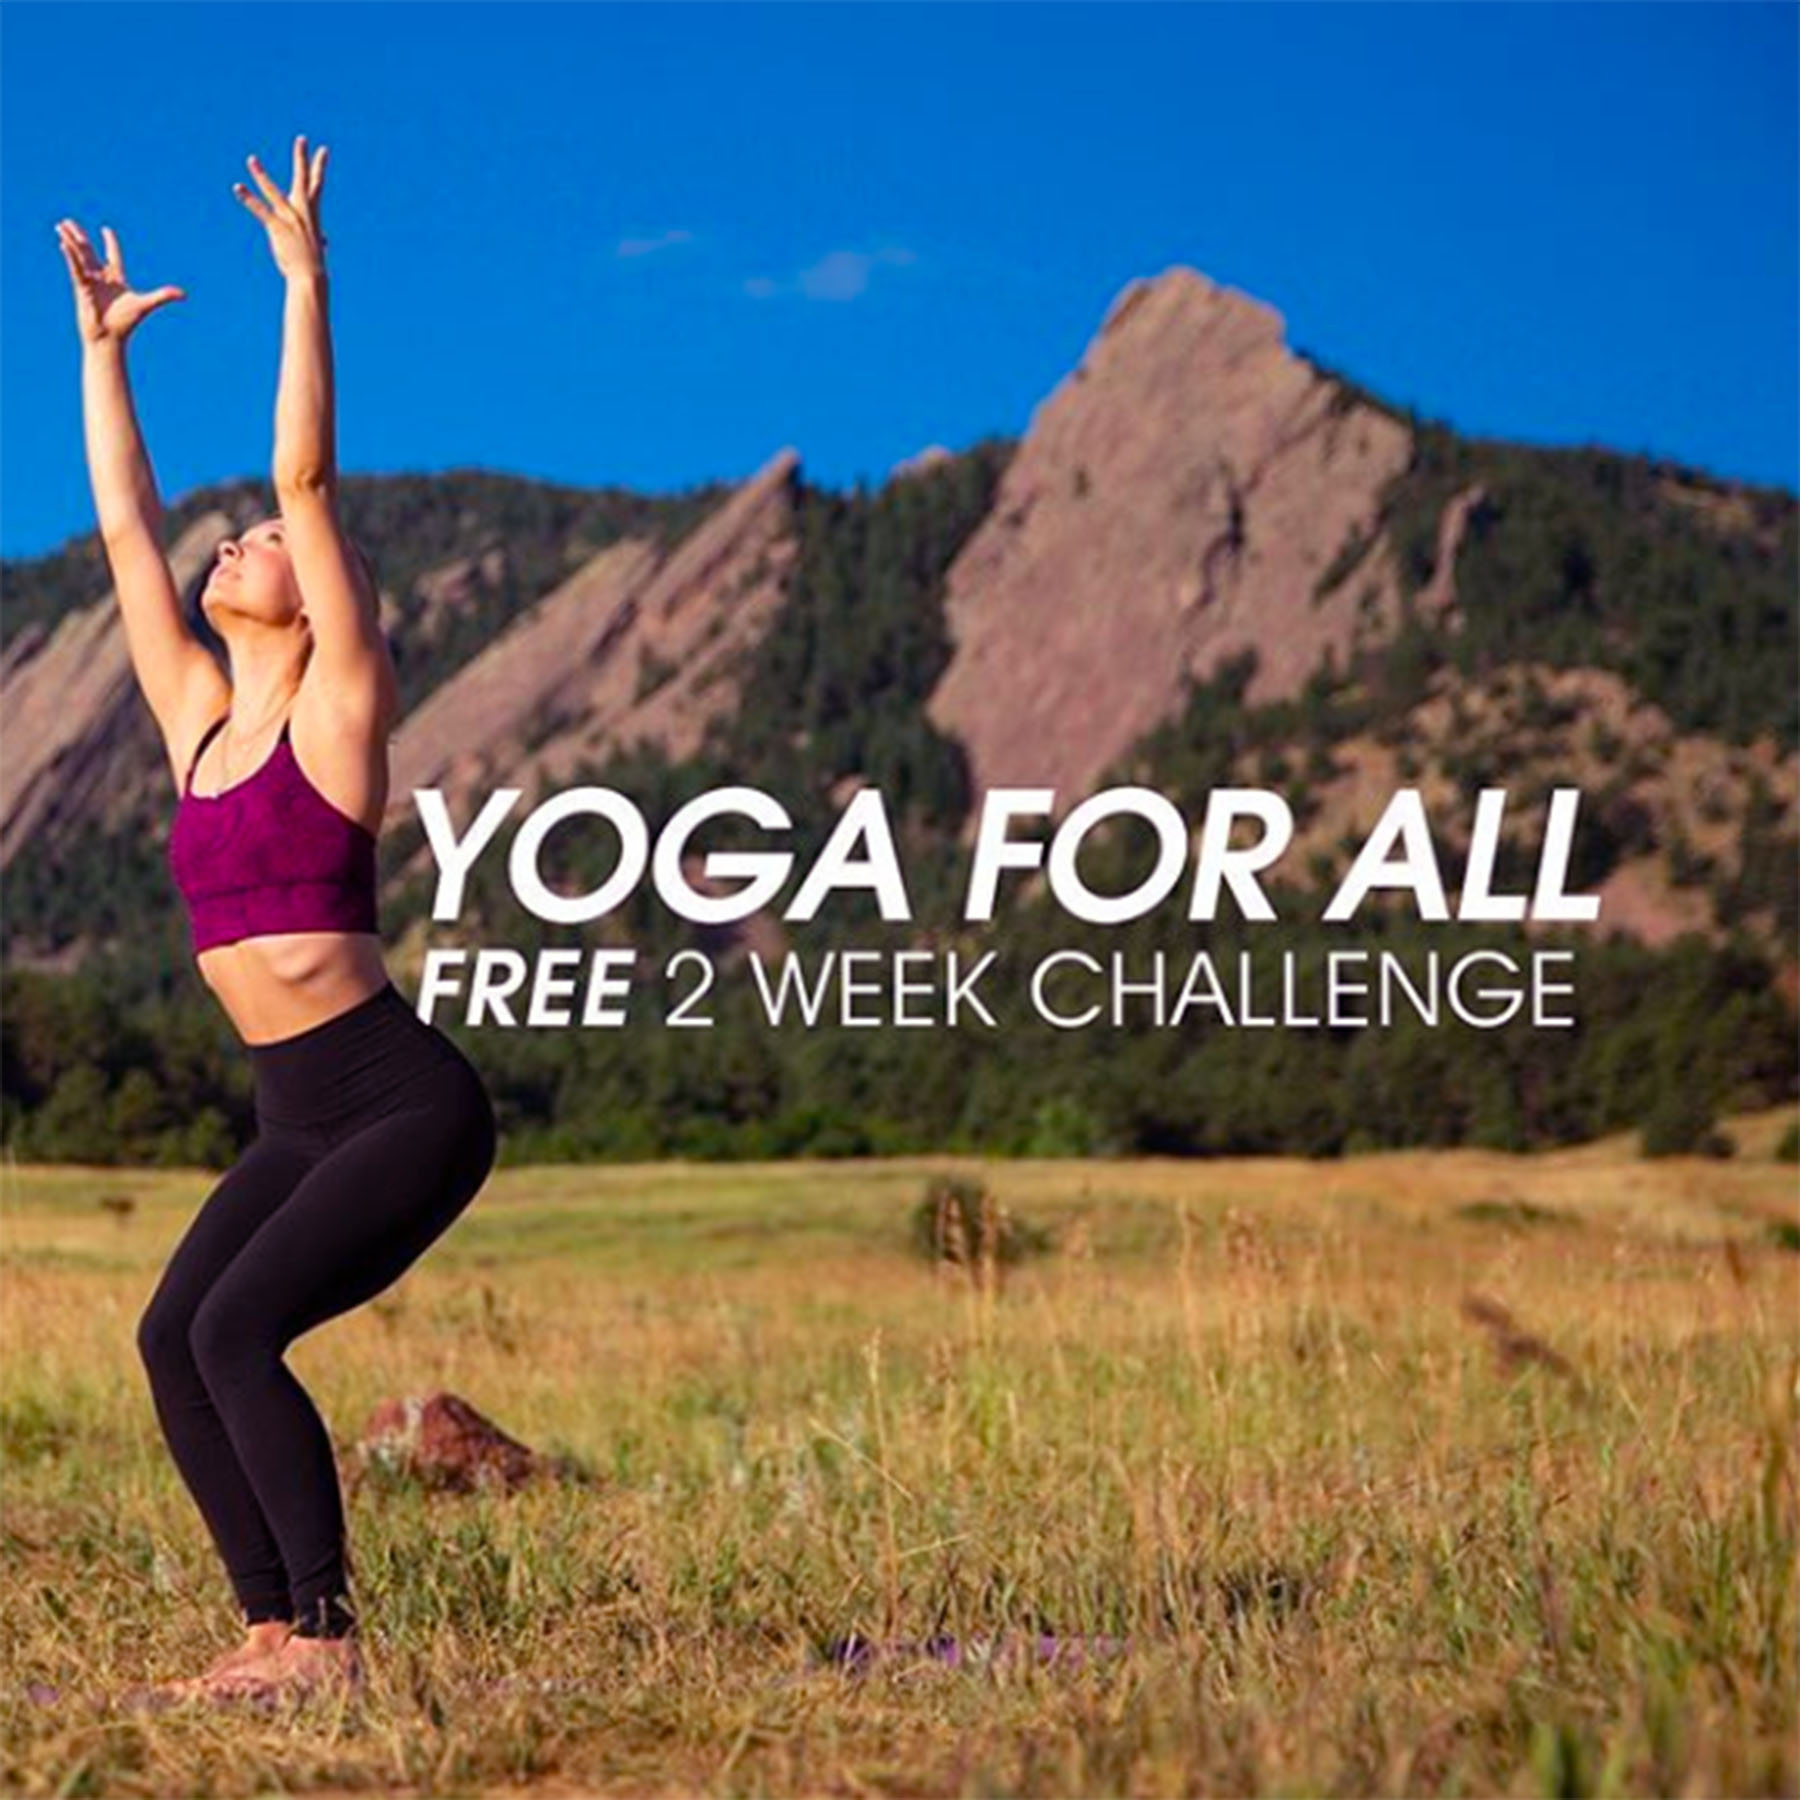 4 Benefits of Doing a Yoga Challenge